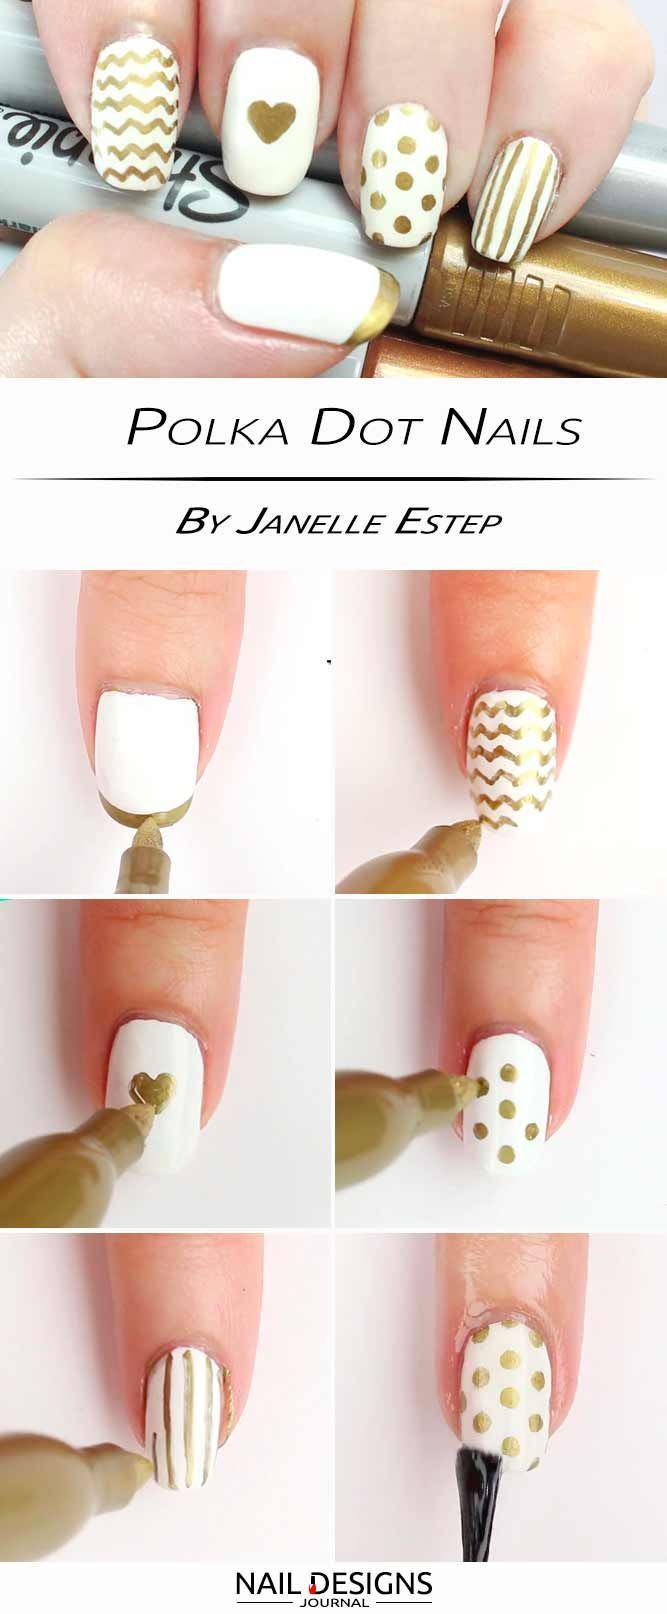 Quick Guide to 15 Stylish Yet Simple | Simple nail designs